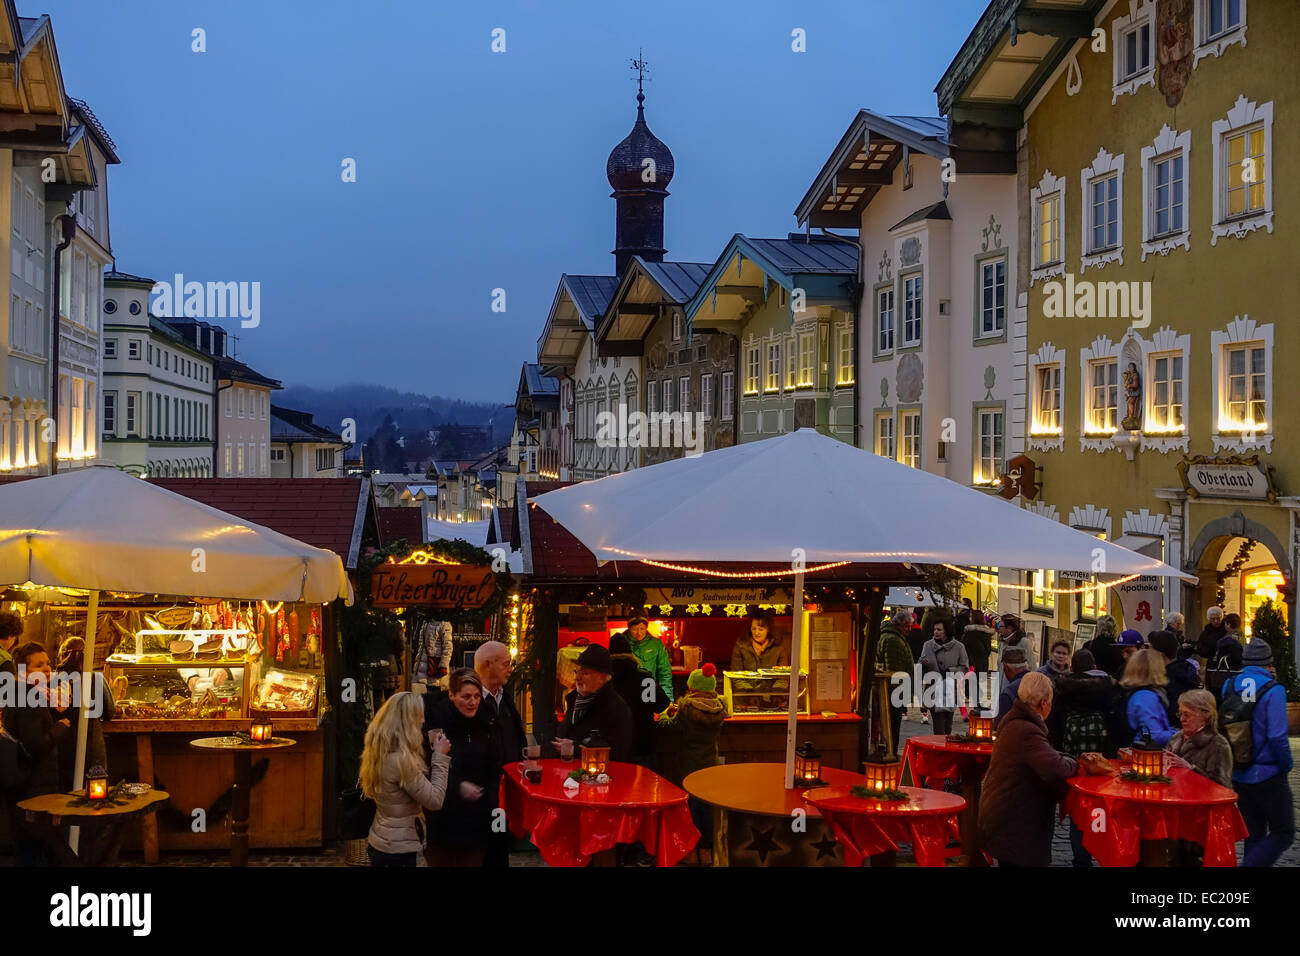 christmas market in bad tolz bavaria germany stock photo royalty free image 76261514 alamy. Black Bedroom Furniture Sets. Home Design Ideas